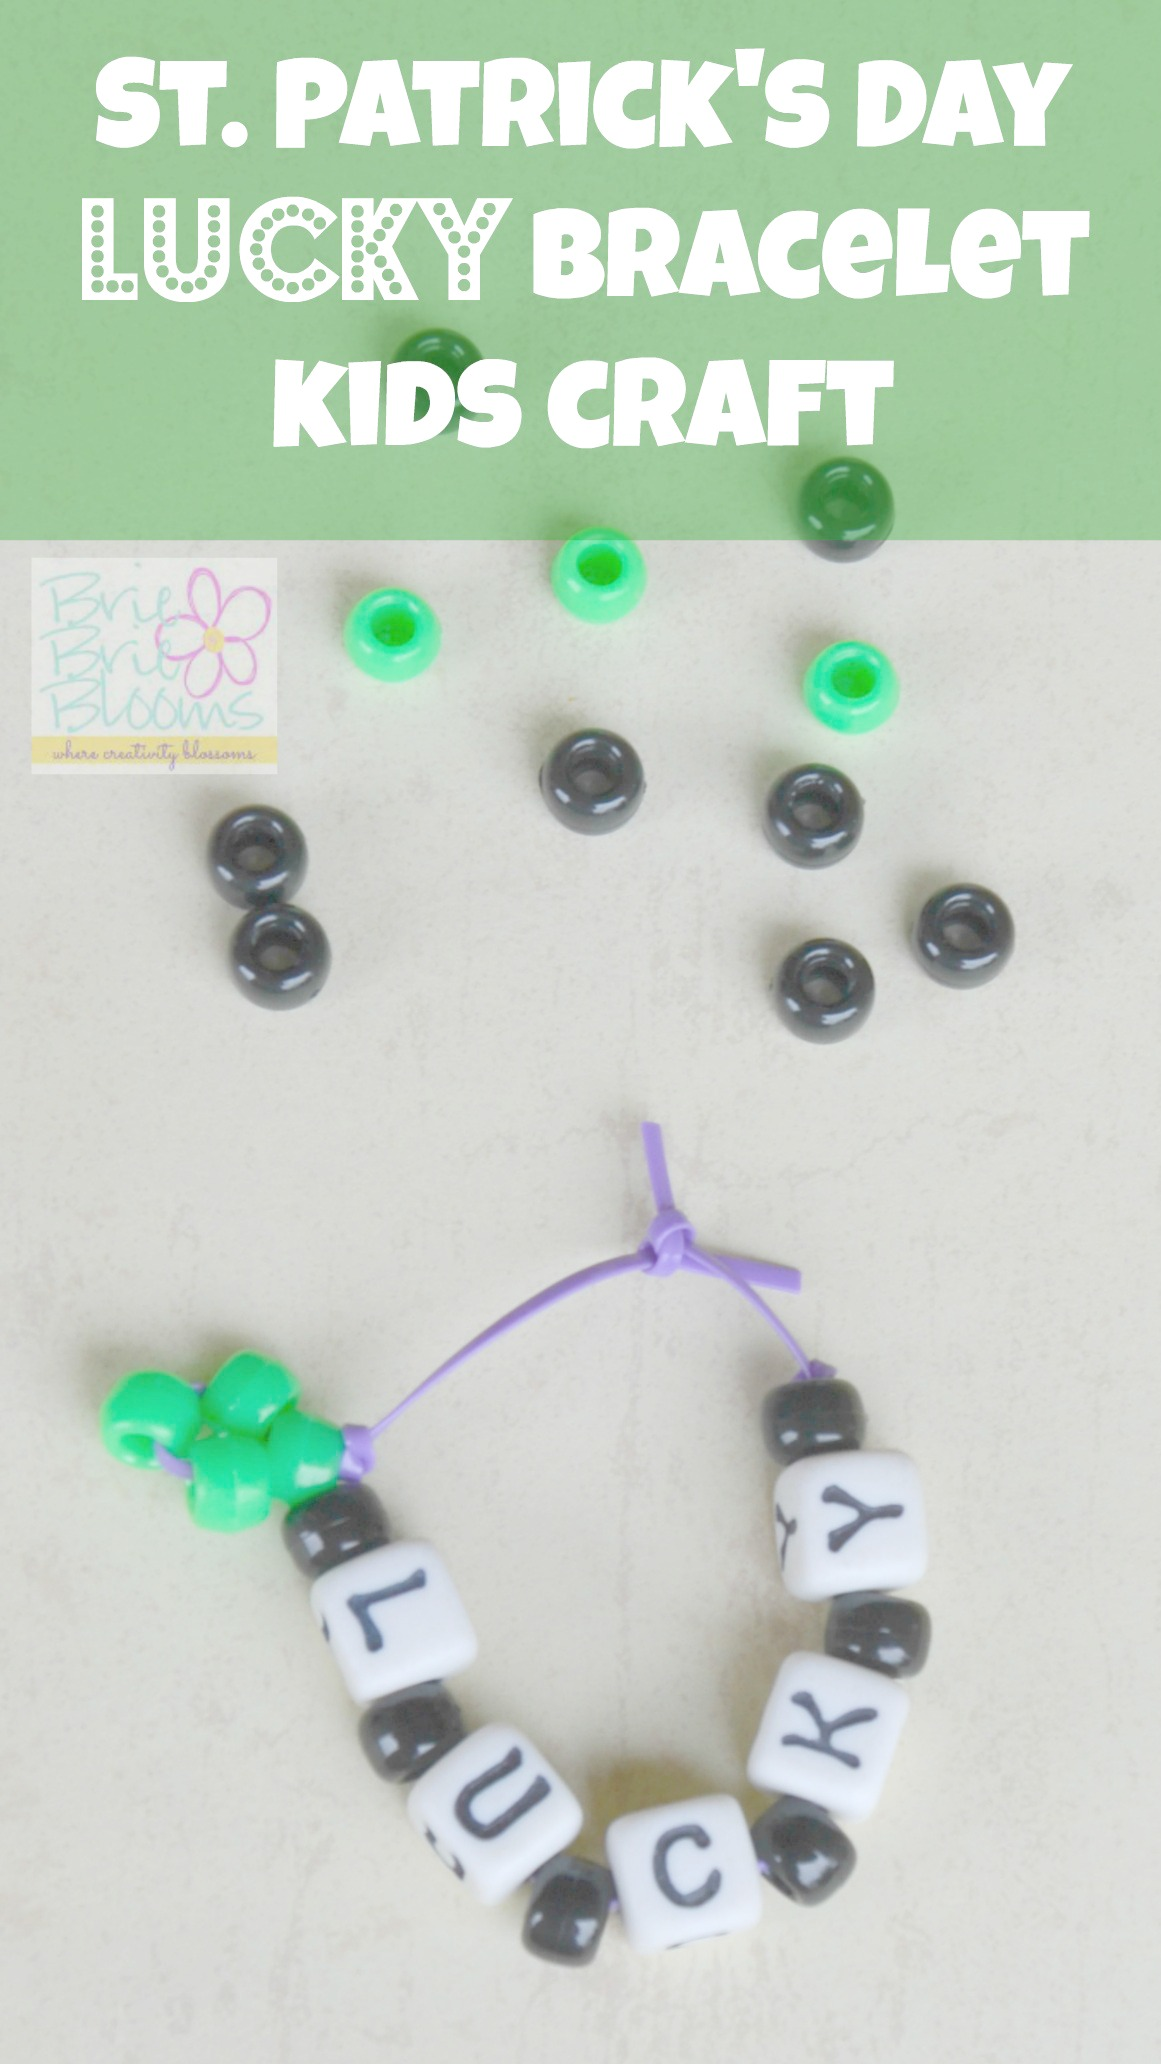 St. Patricks Day Bracelet Kids Craft